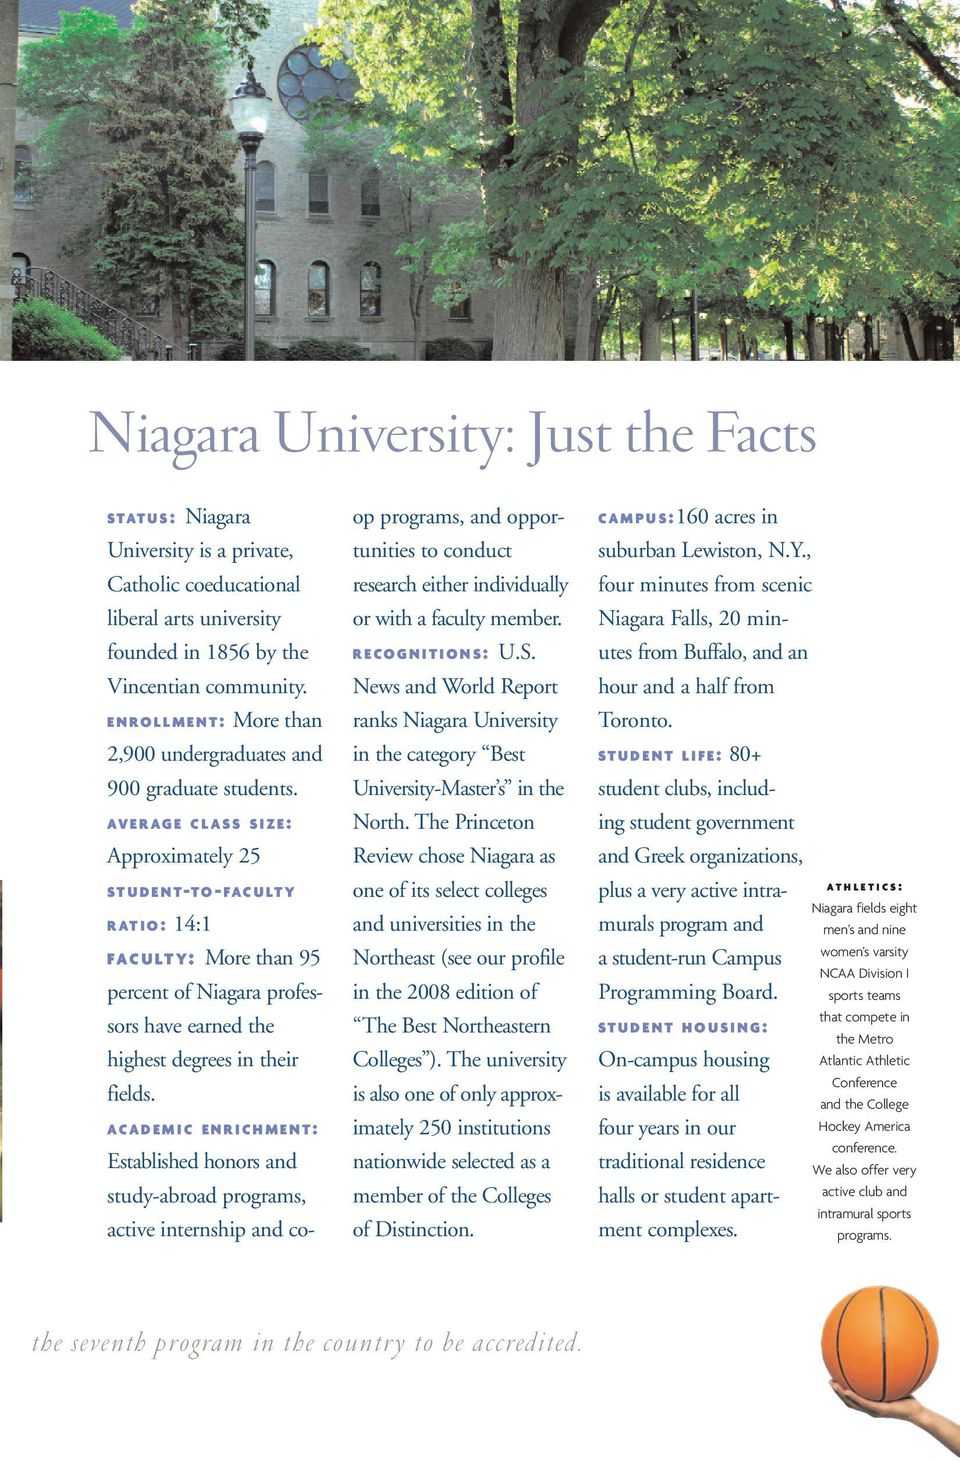 AVERAGE CLASS SIZE: Approximately 25 STUDENT-TO- FACULTY RATIO: 14:1 FACULTY: More than 95 percent of Niagara professors have earned the highest degrees in their fields.